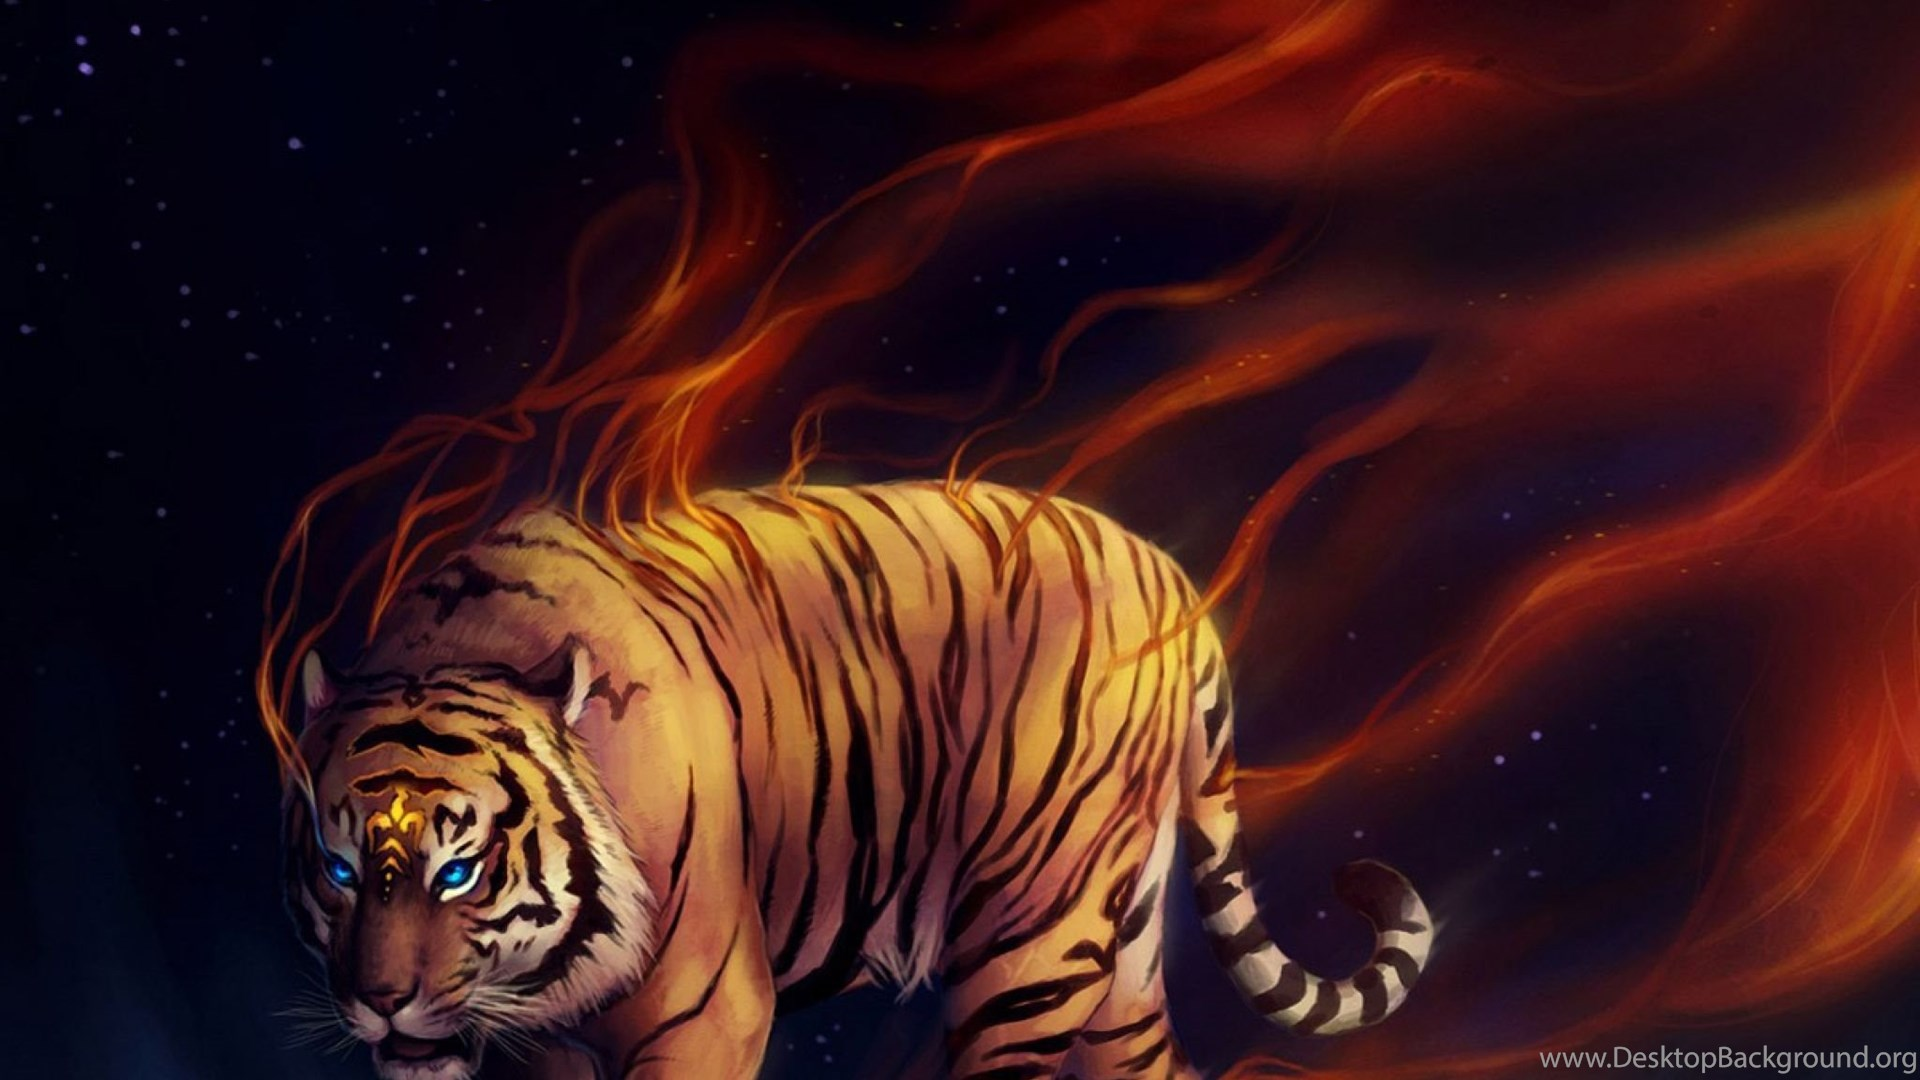 Download Wallpapers 2048x2048 Tiger, Abstract, Moon, Art